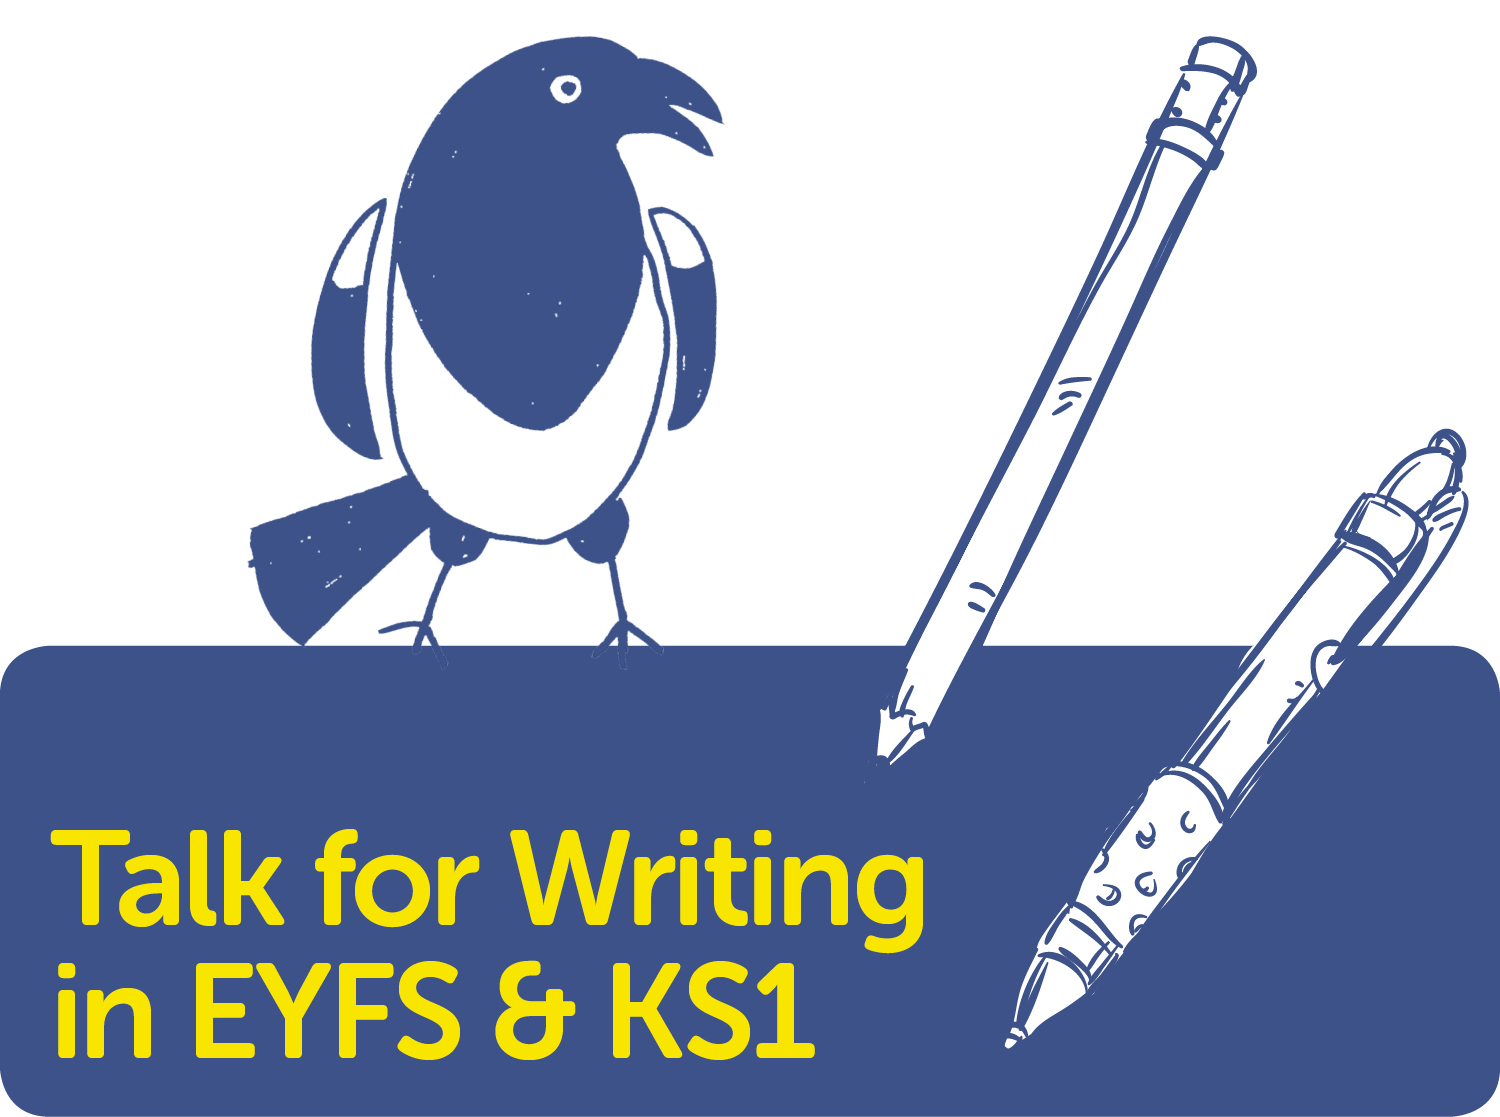 Talk for Writing EYFS KS1 Conference